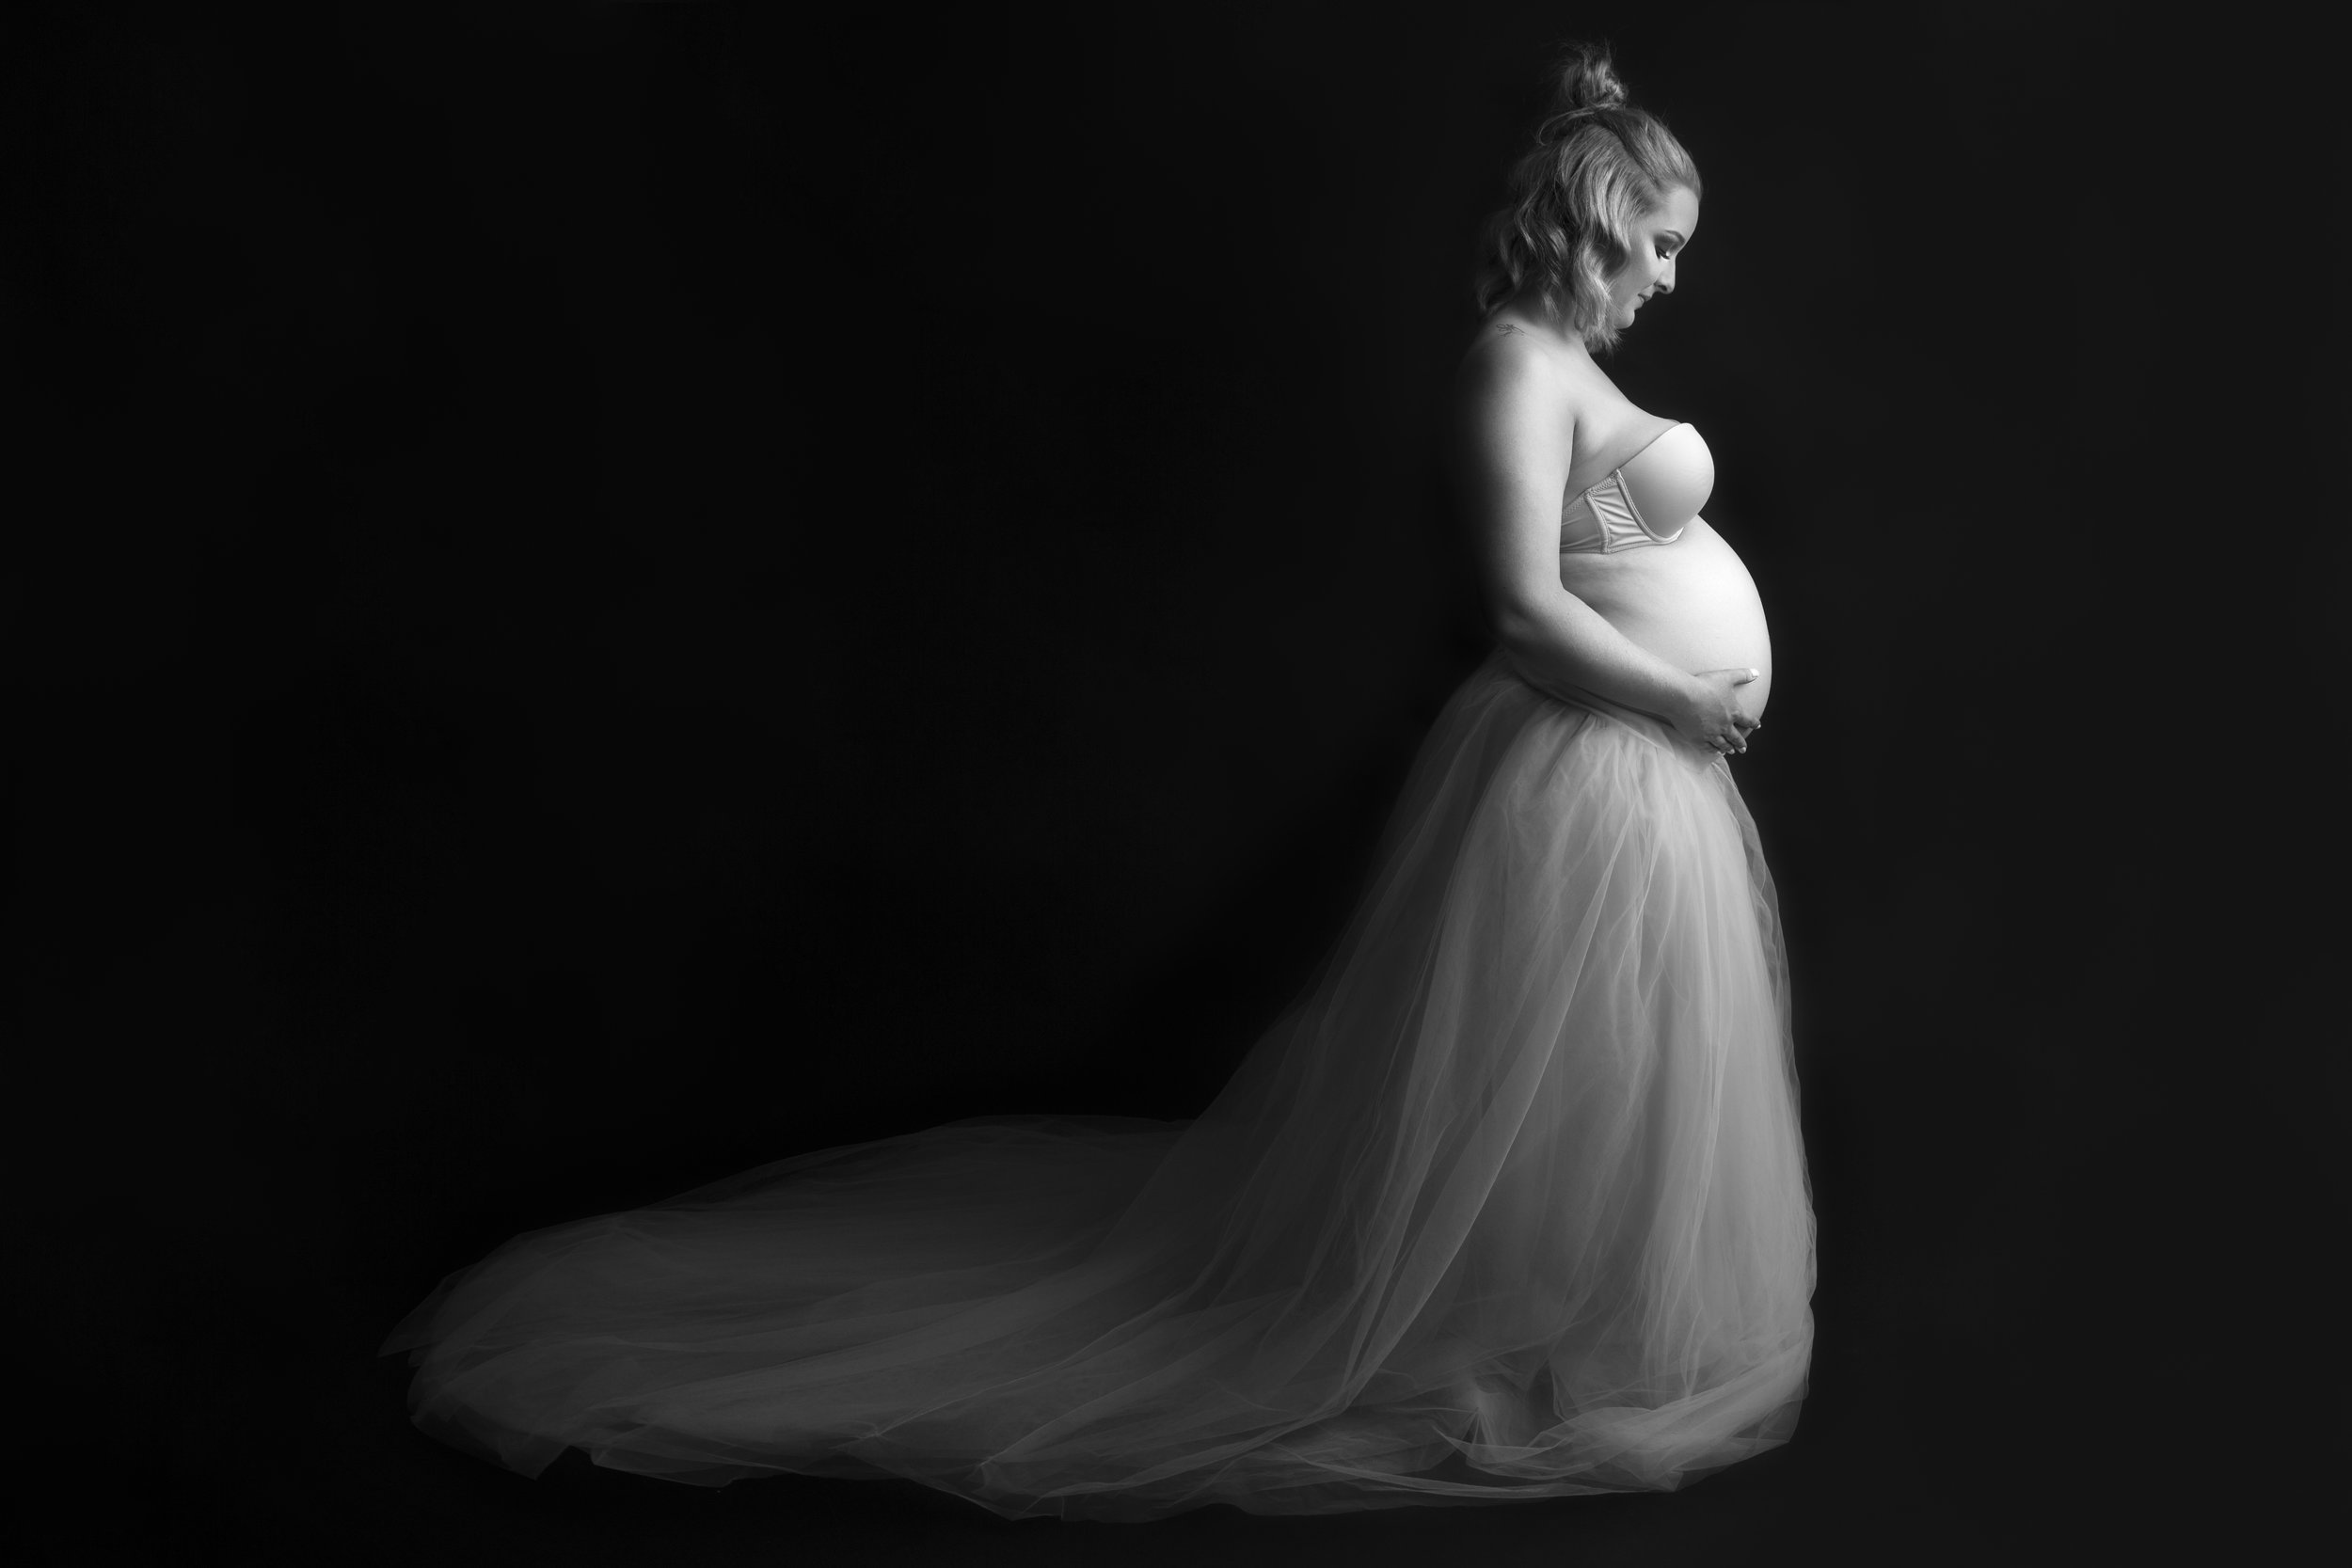 Silver Package $450 - - Includes a 1 hour photography session in my home studio or on location with use of Maternity gowns. ($30 extra for location sessions)- 20 edited high res images via online gallery